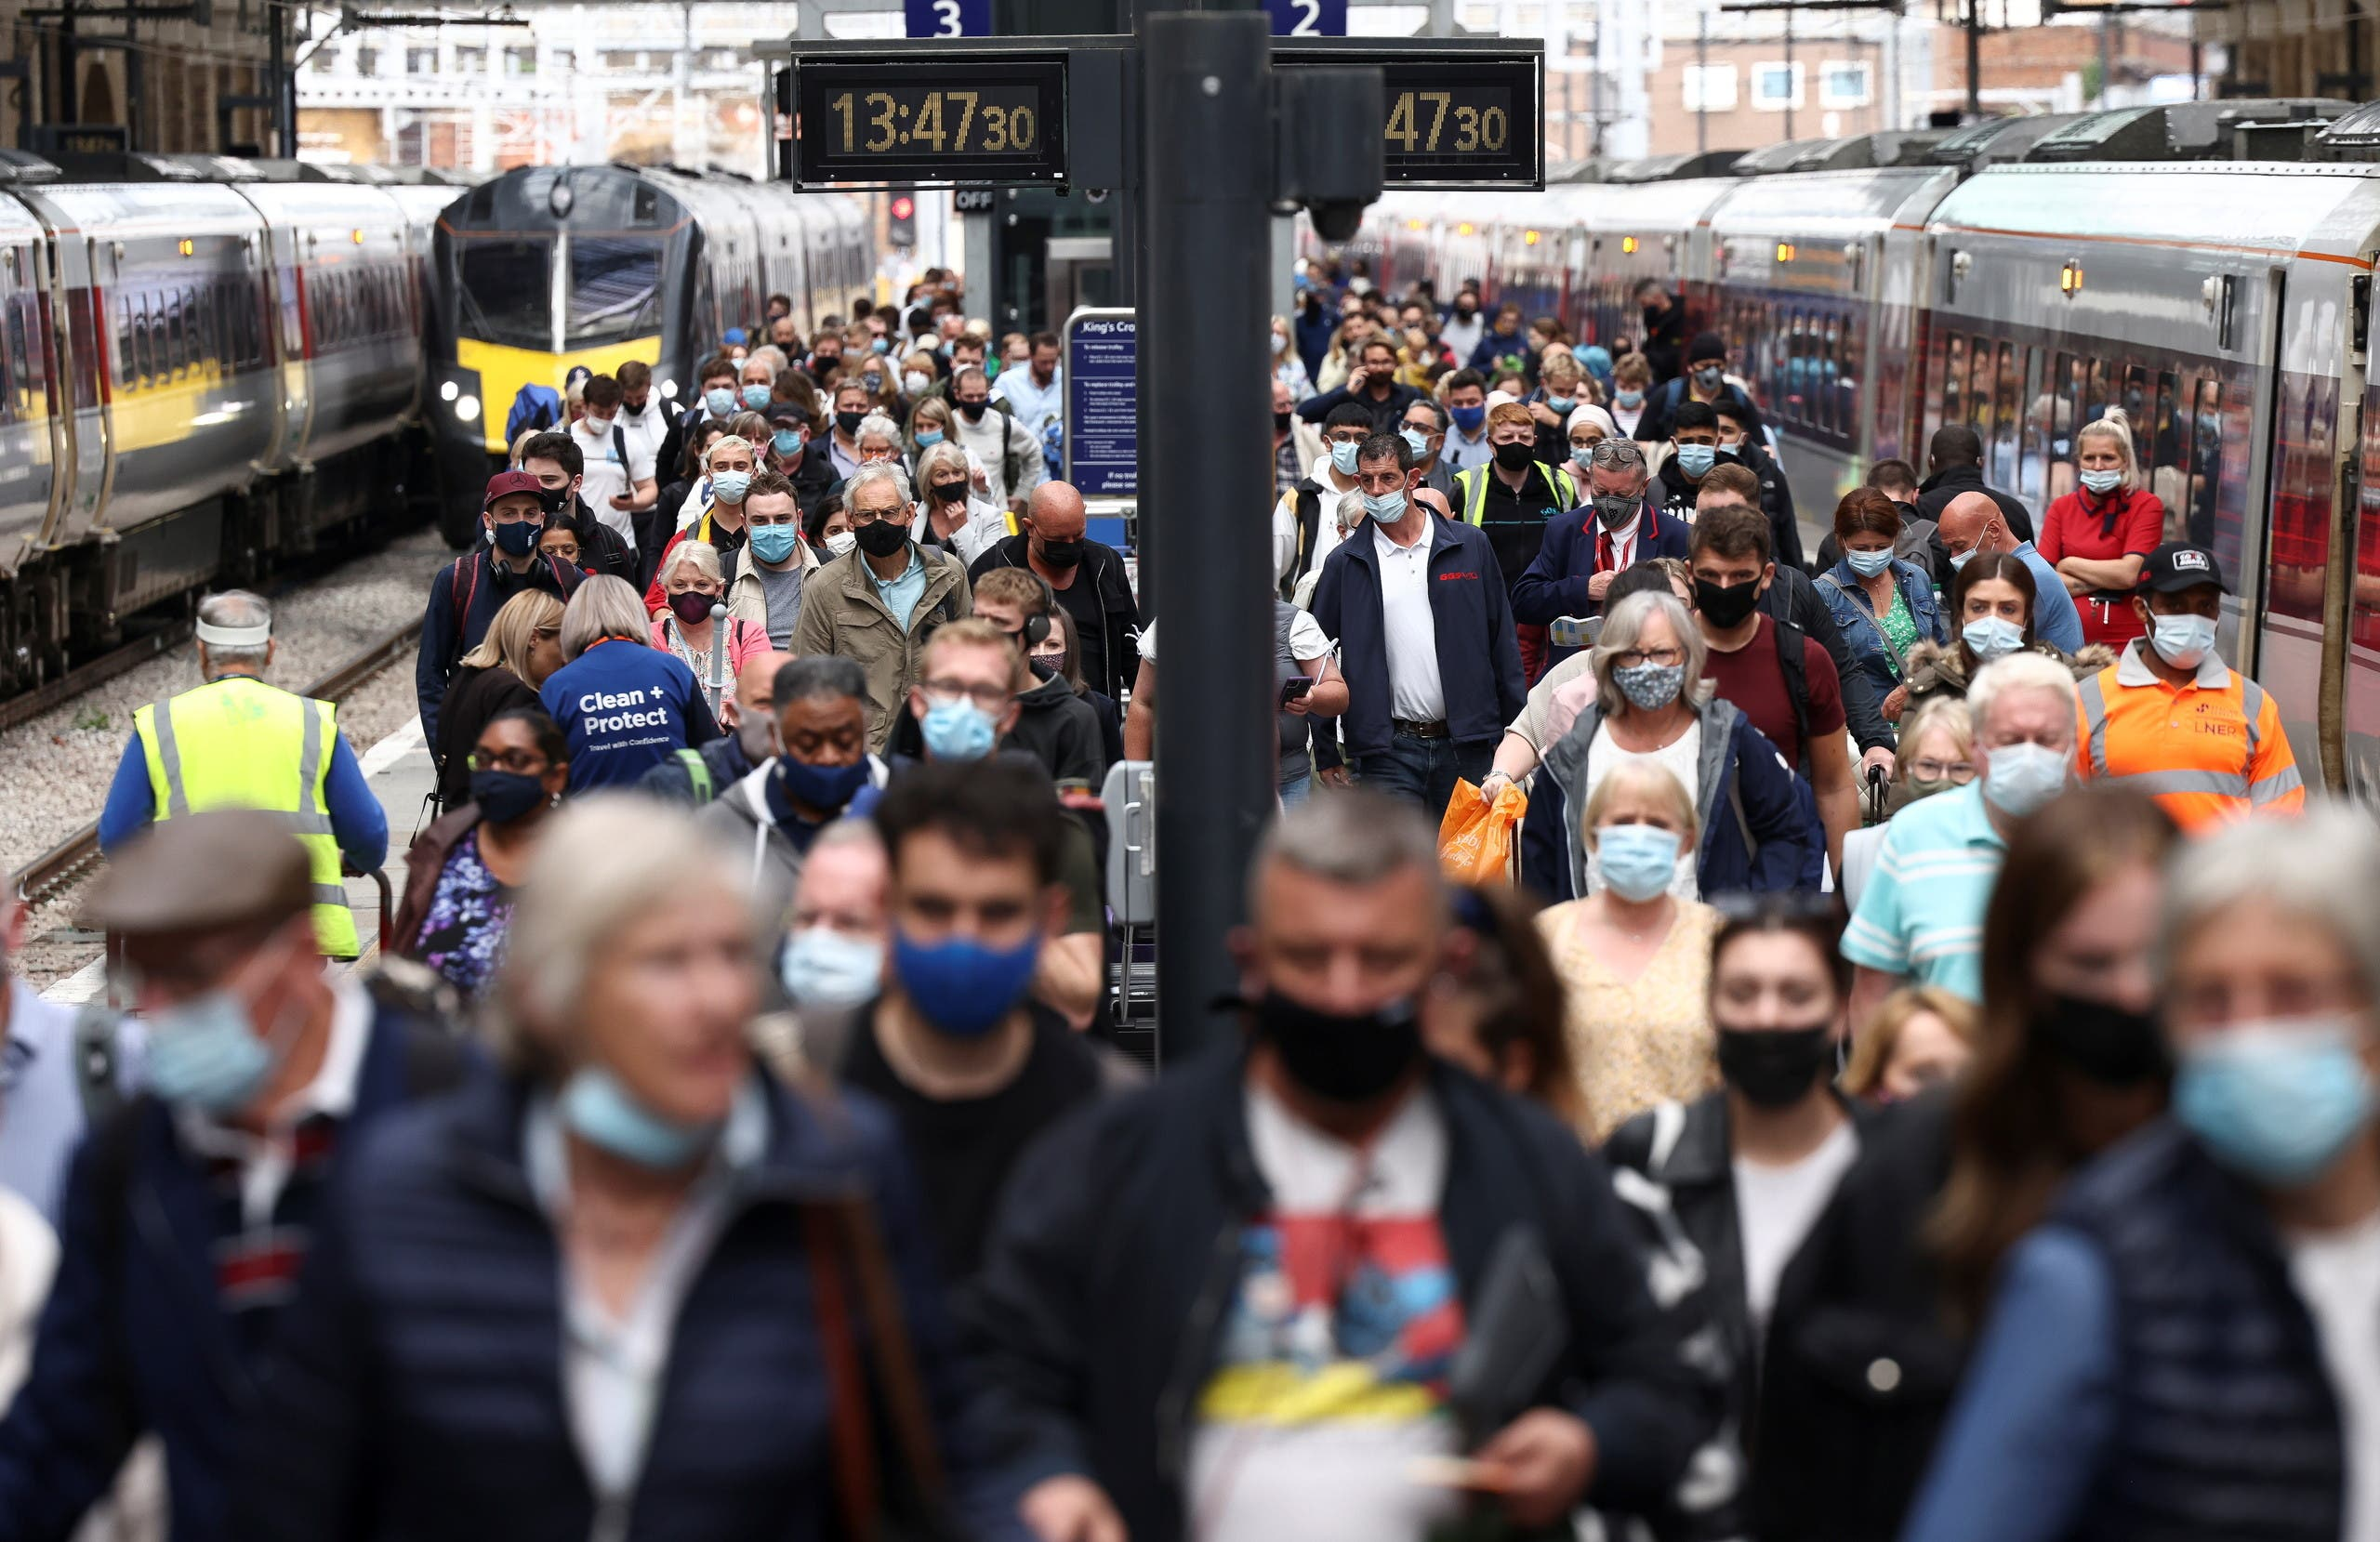 People wearing protective face masks walk along a platform at King's Cross Station, amid the coronavirus disease (COVID-19) outbreak in London, Britain, July 12, 2021. (Reuters)